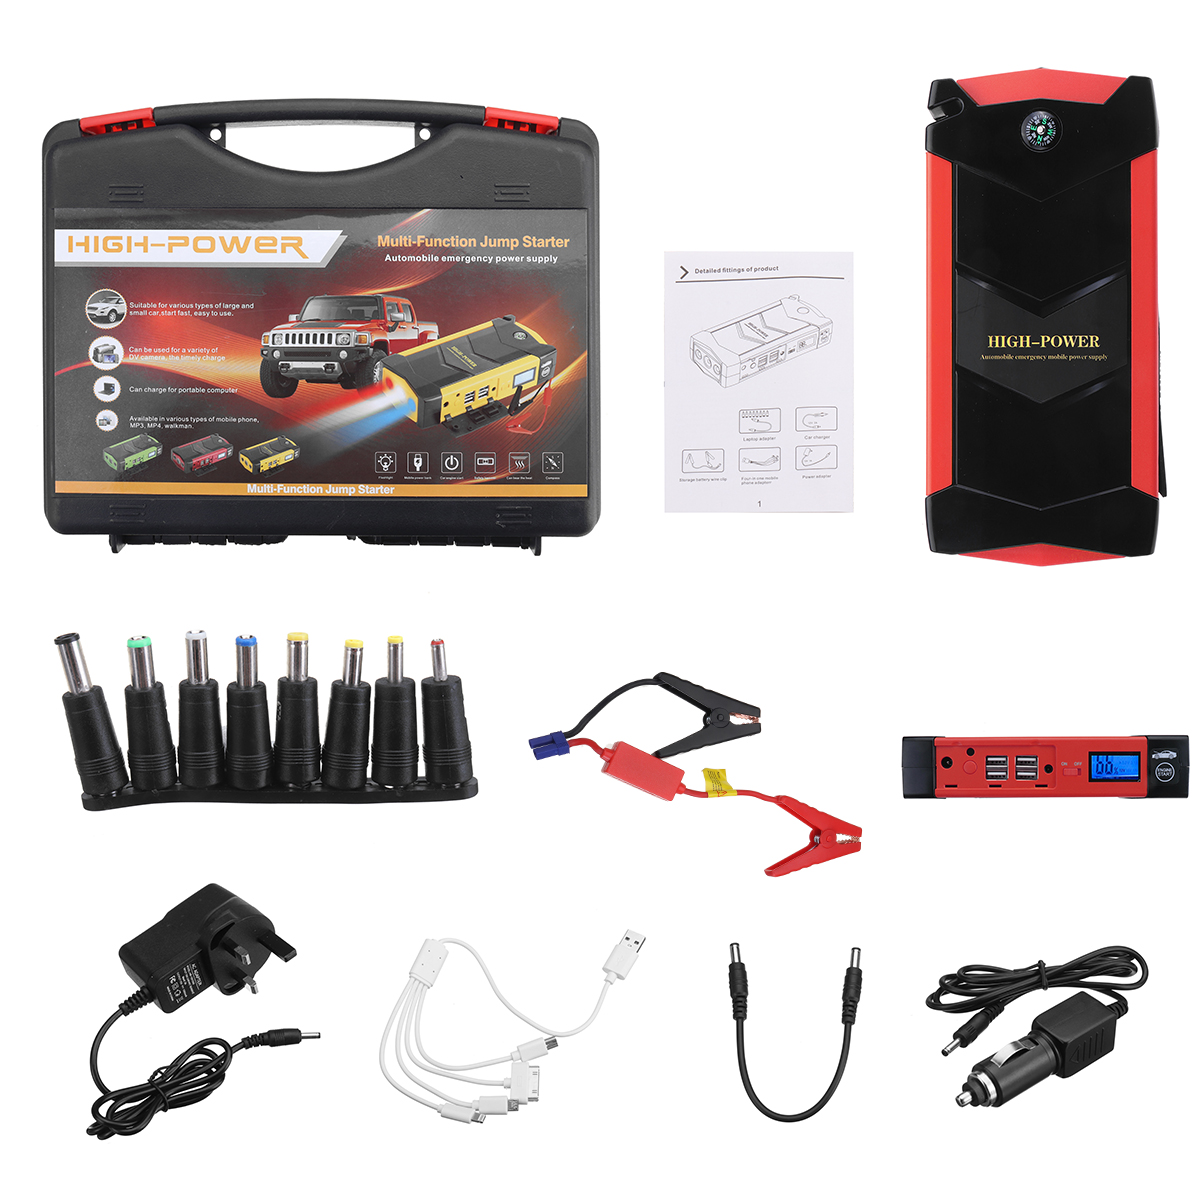 12V 82800mAh Car Jump Starter Booster Power Bank 4USB Car Battery Charger Starting Tool Kit For Car Starting Device 89800mah car jump starter 12v 4usb 600a portable car battery booster charger booster power bank starting device car starter